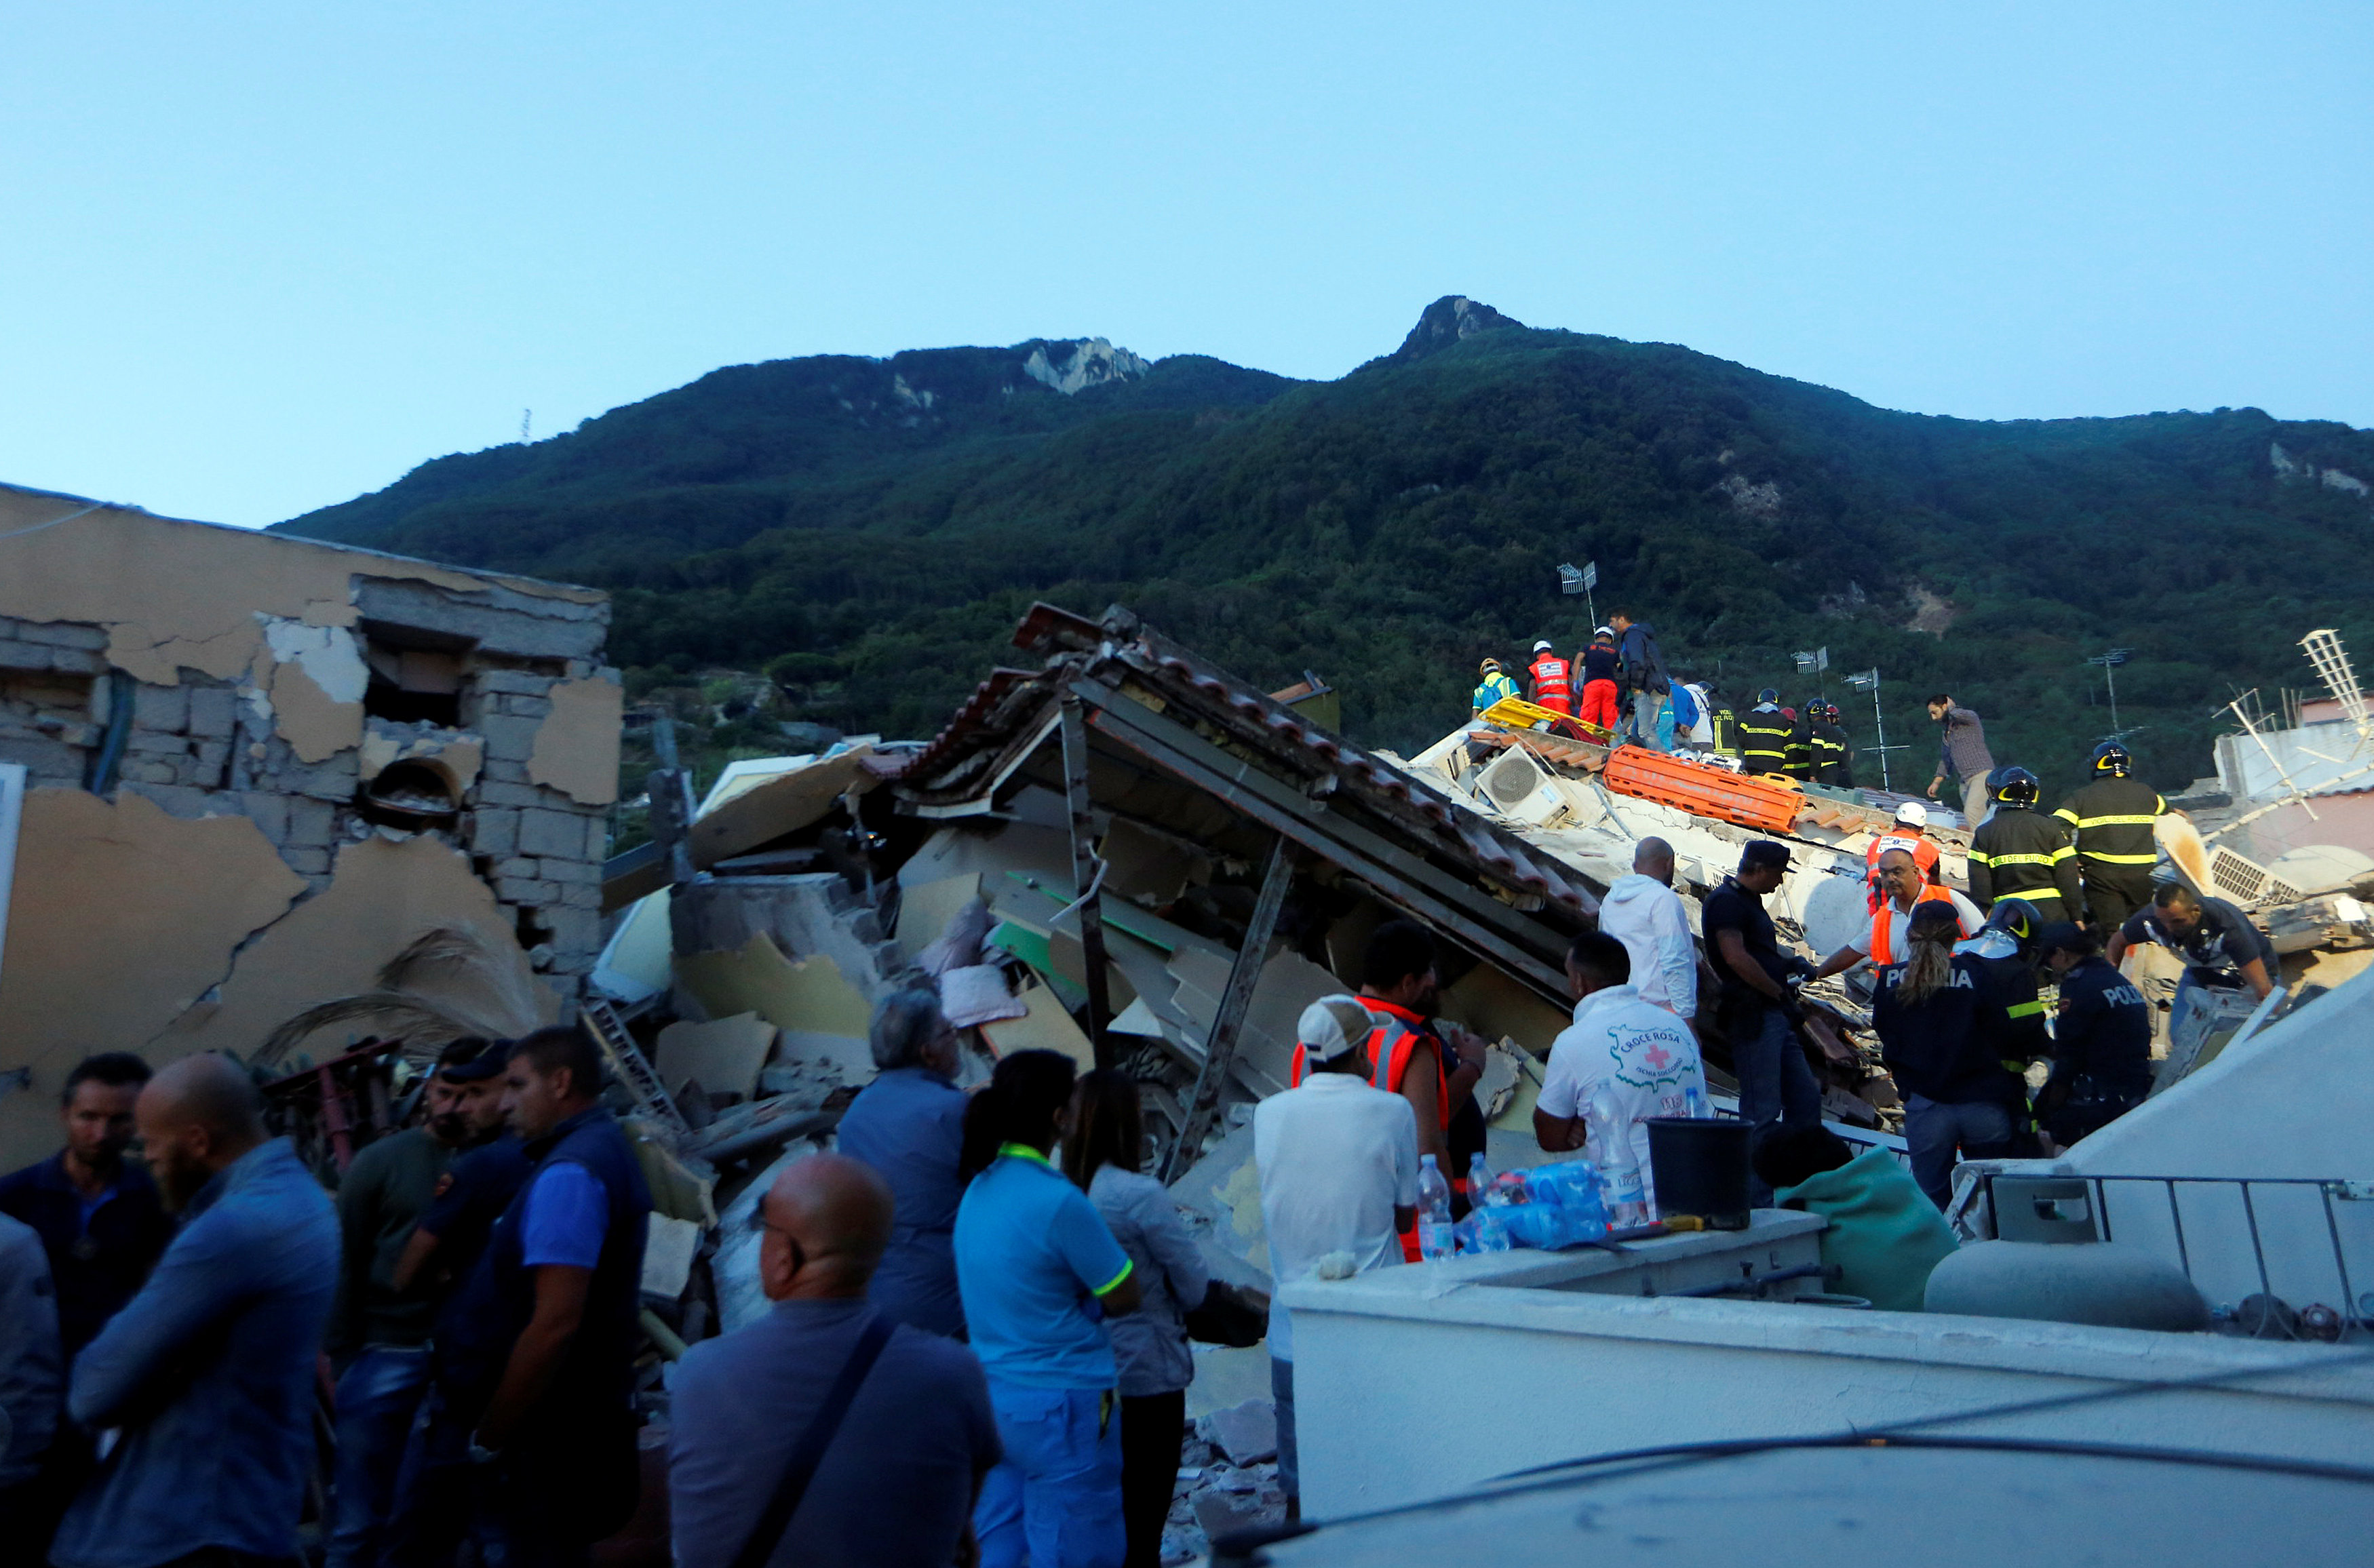 Rescue workers check a collapsed house after an earthquake hit the island of Ischia, off the coast of Naples, Italy on August 22, 2017. (REUTERS/Ciro De Luca)